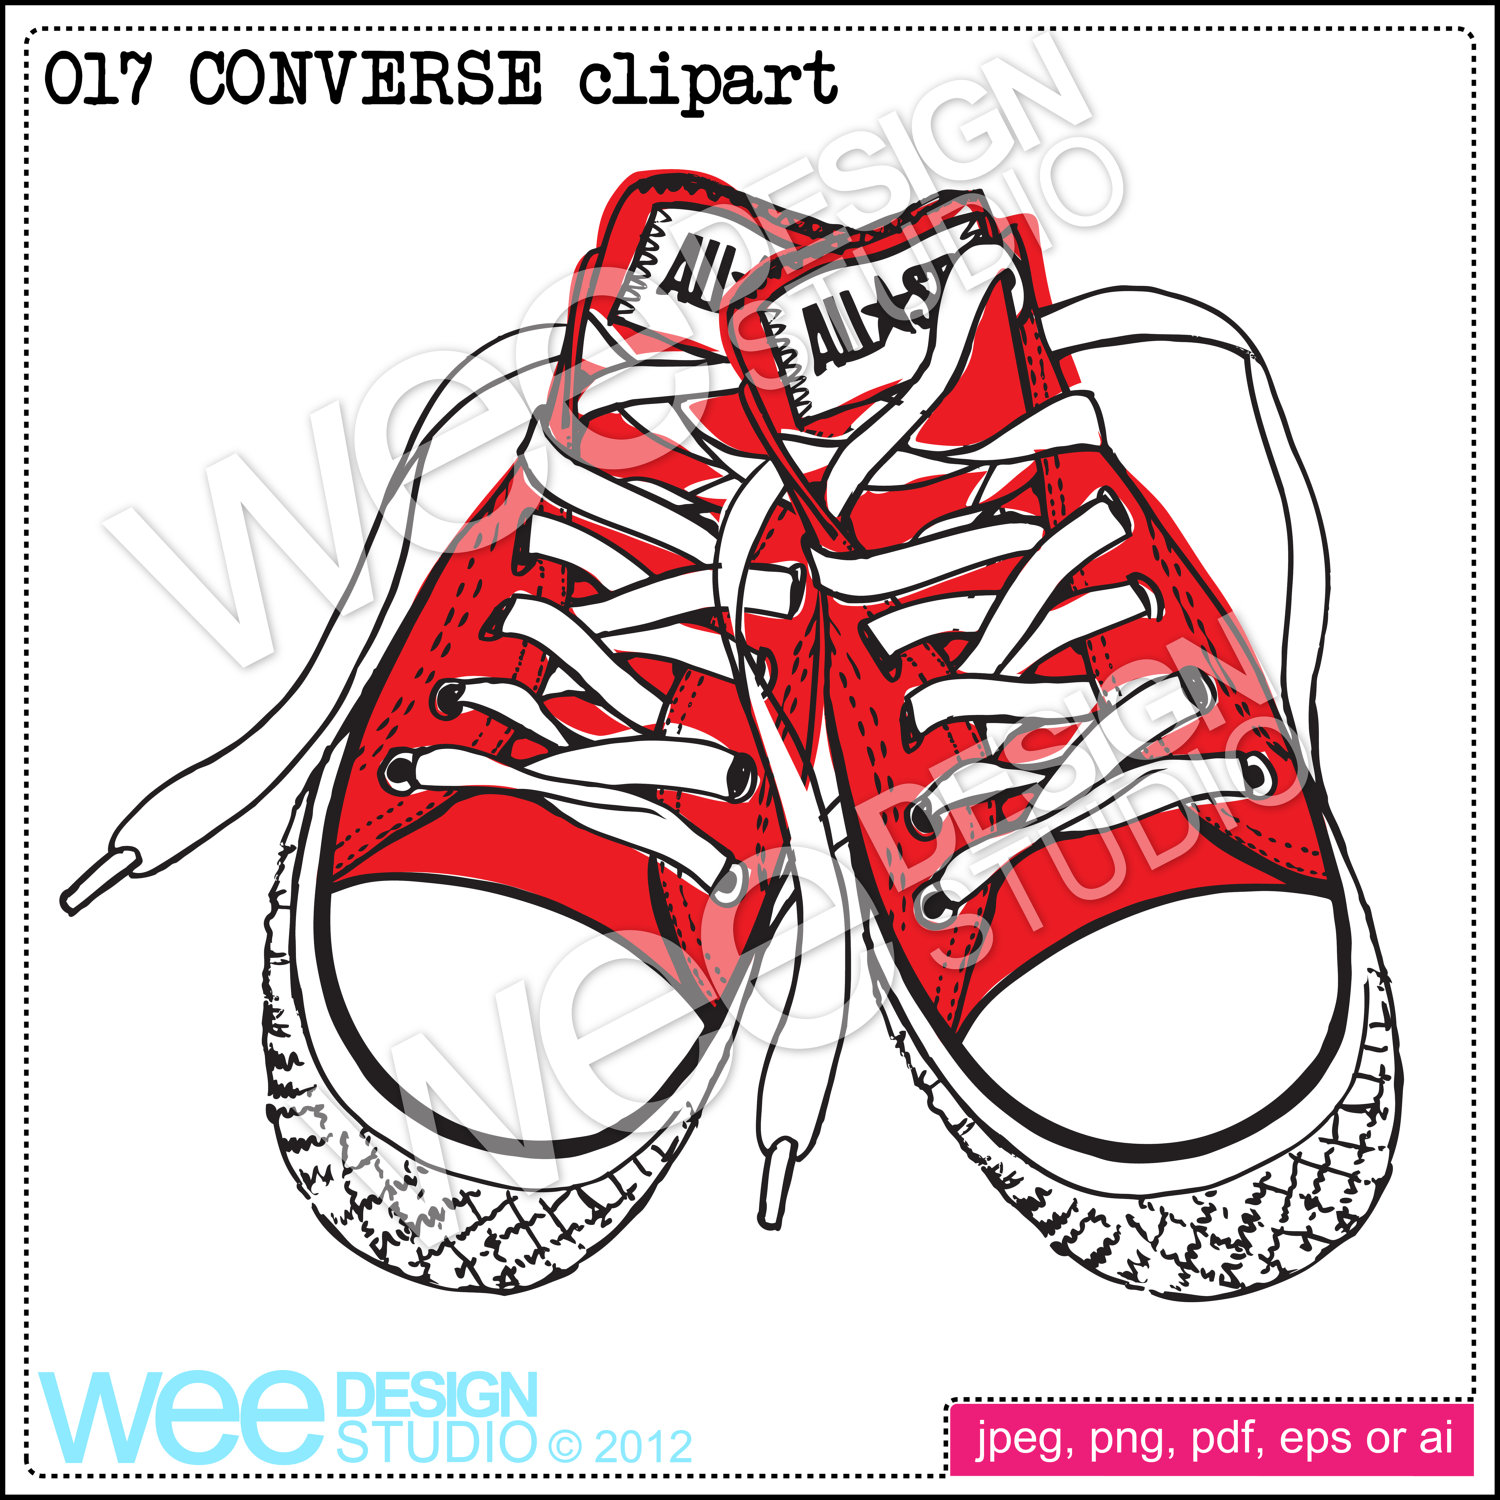 Drawn shoe cartoon Item? png digital sneakers CONVERSE